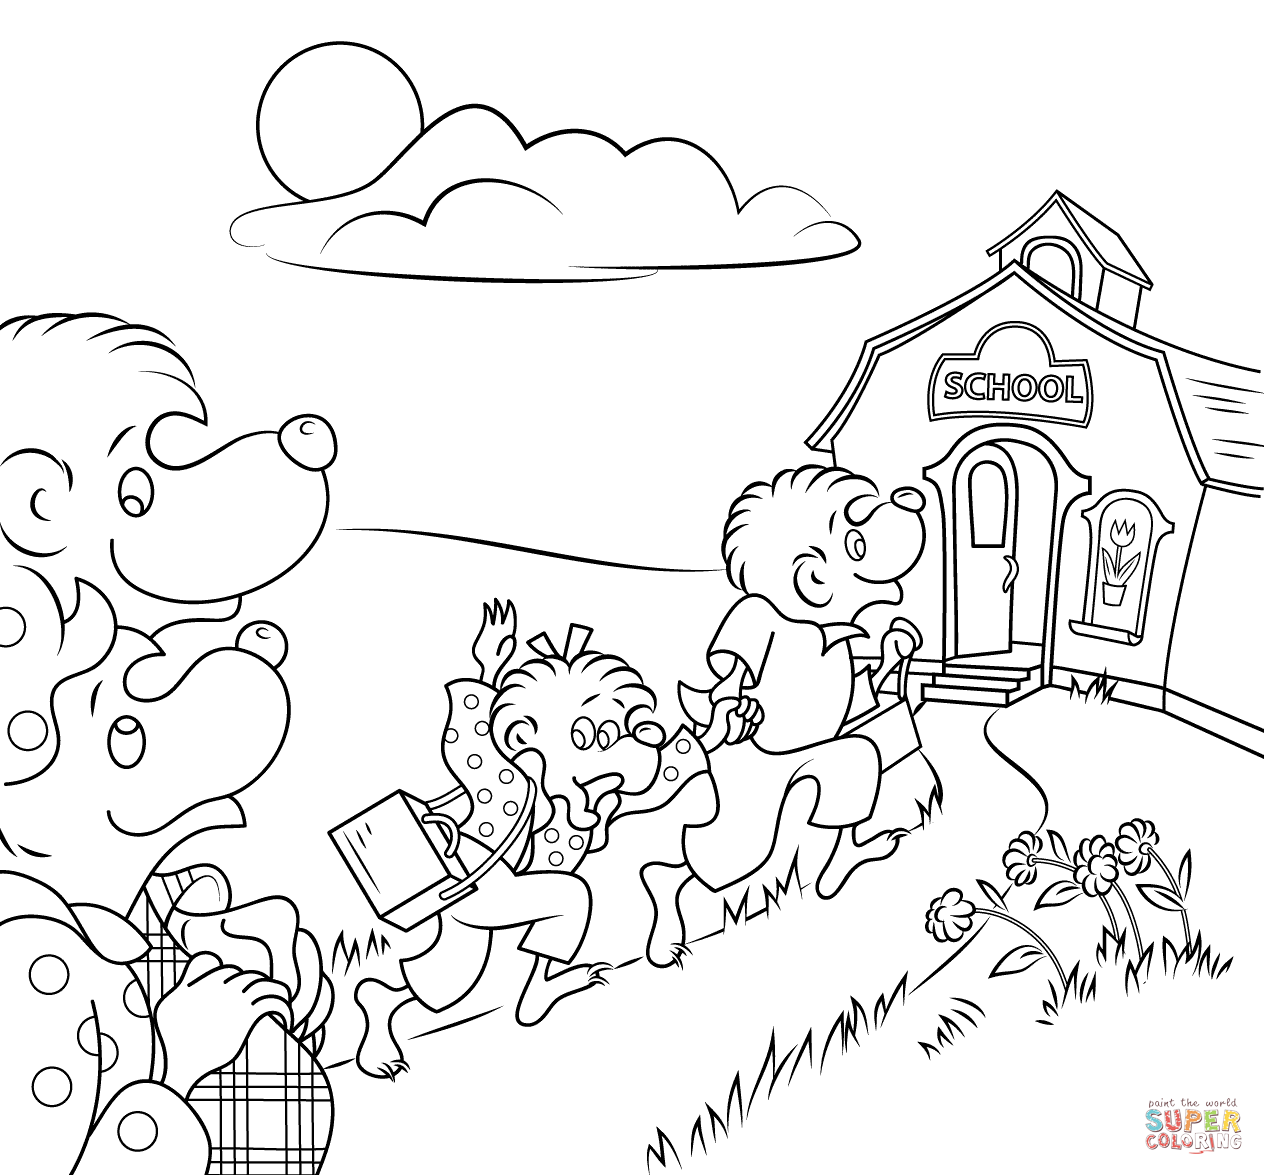 Berenstain Bears Go To School Coloring Page